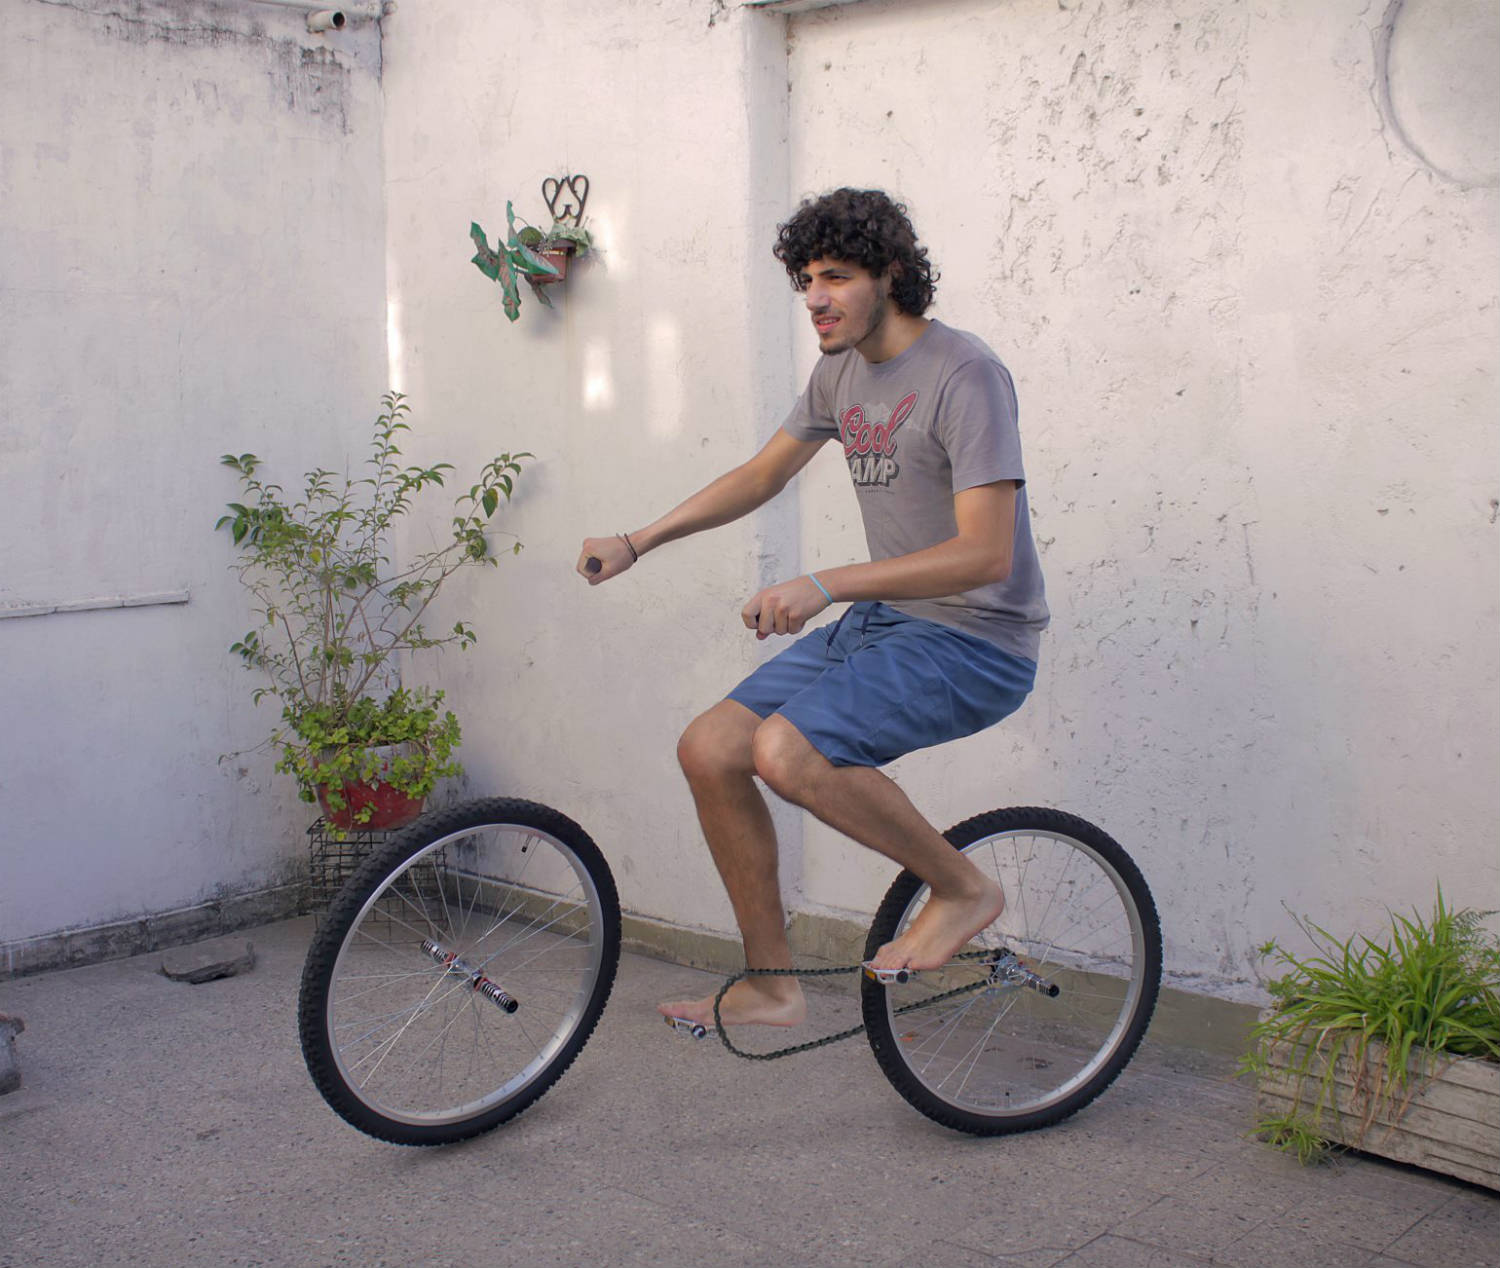 Martín De Pasquale illusion bicycle